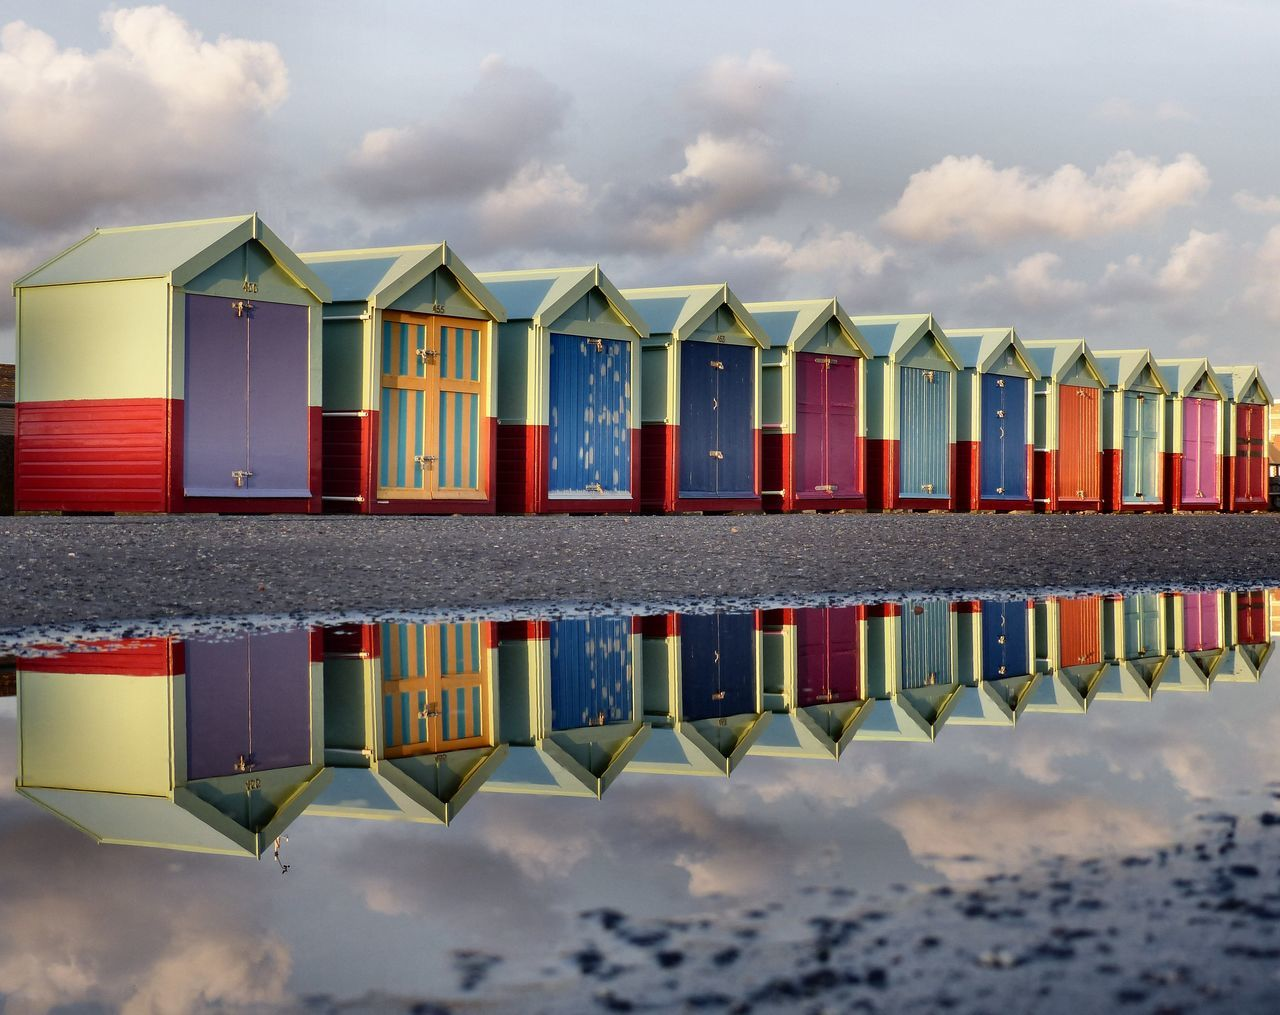 A view of Hove seafront - March 2017. Beach Huts Beachhuts Brighton Uk East Sussex England, UK Hove Promenade Reflections In The Water